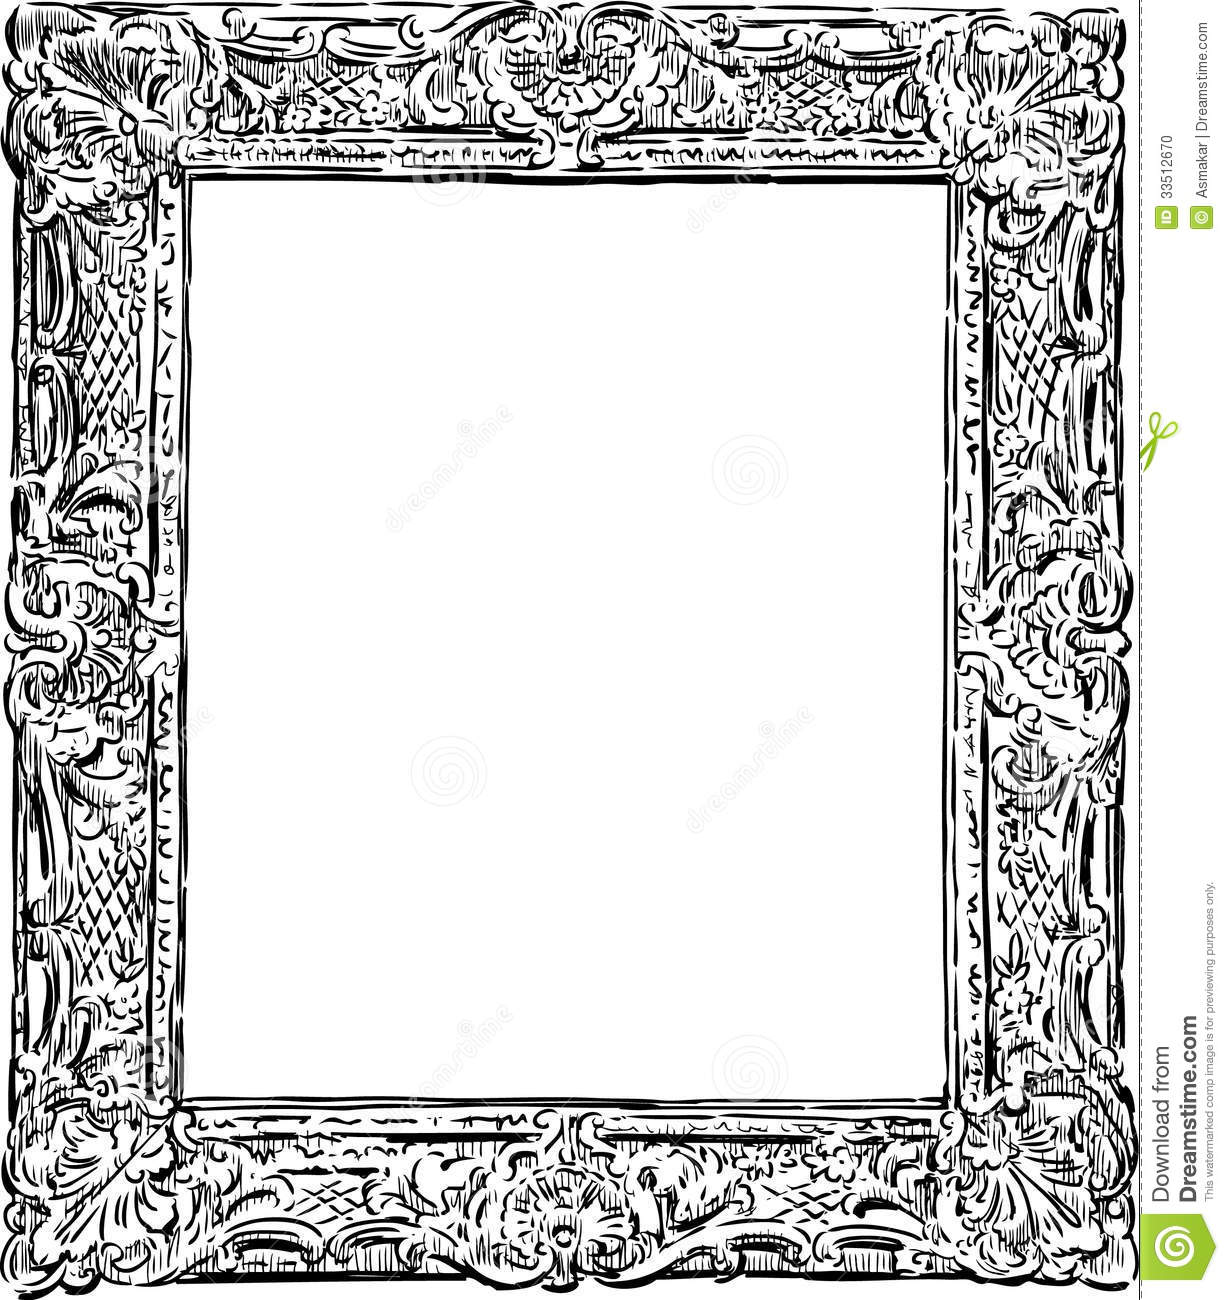 Decorative vintage frame stock photo. Image of wooden ...